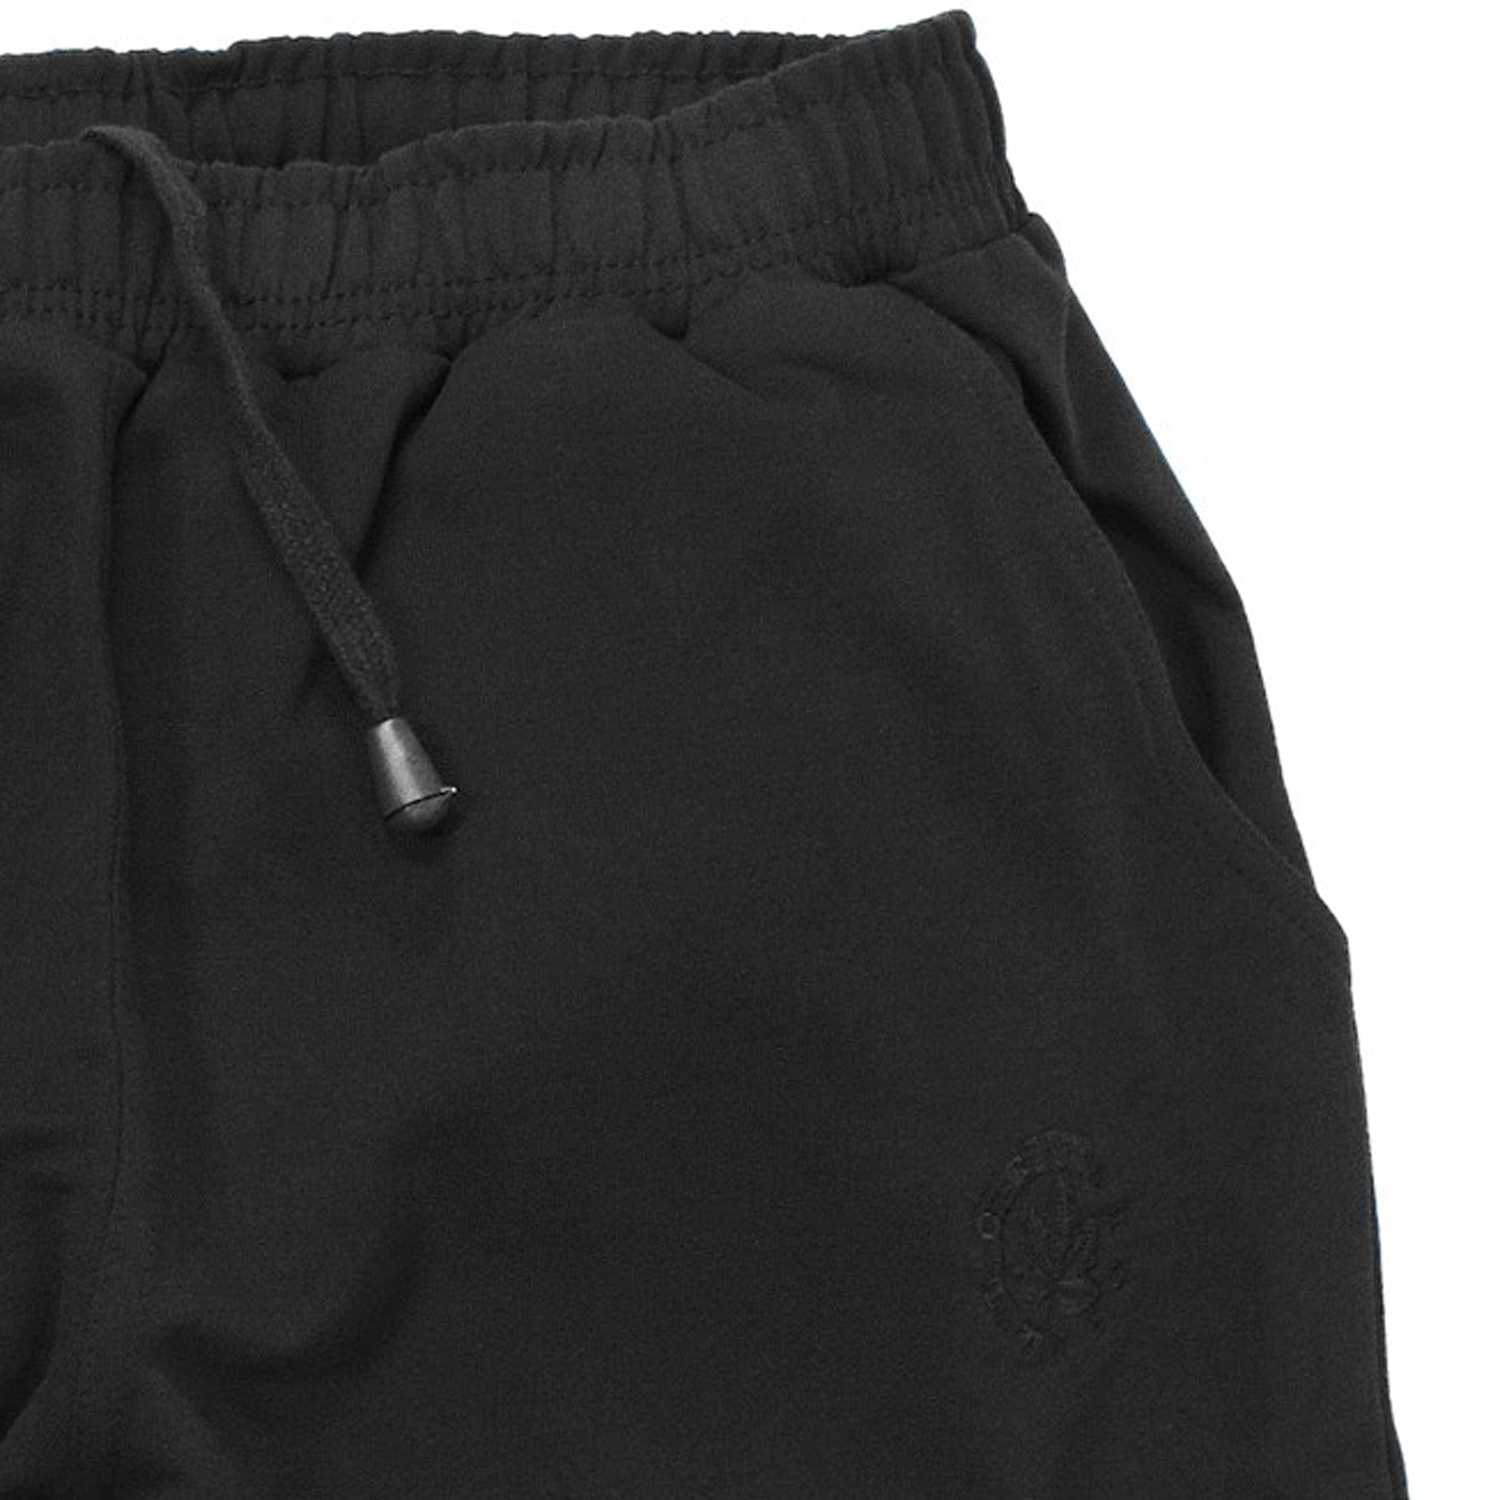 Detail Image to Black Sweat bermuda from Ahorn Sportswear in over sizes up to 10 XL